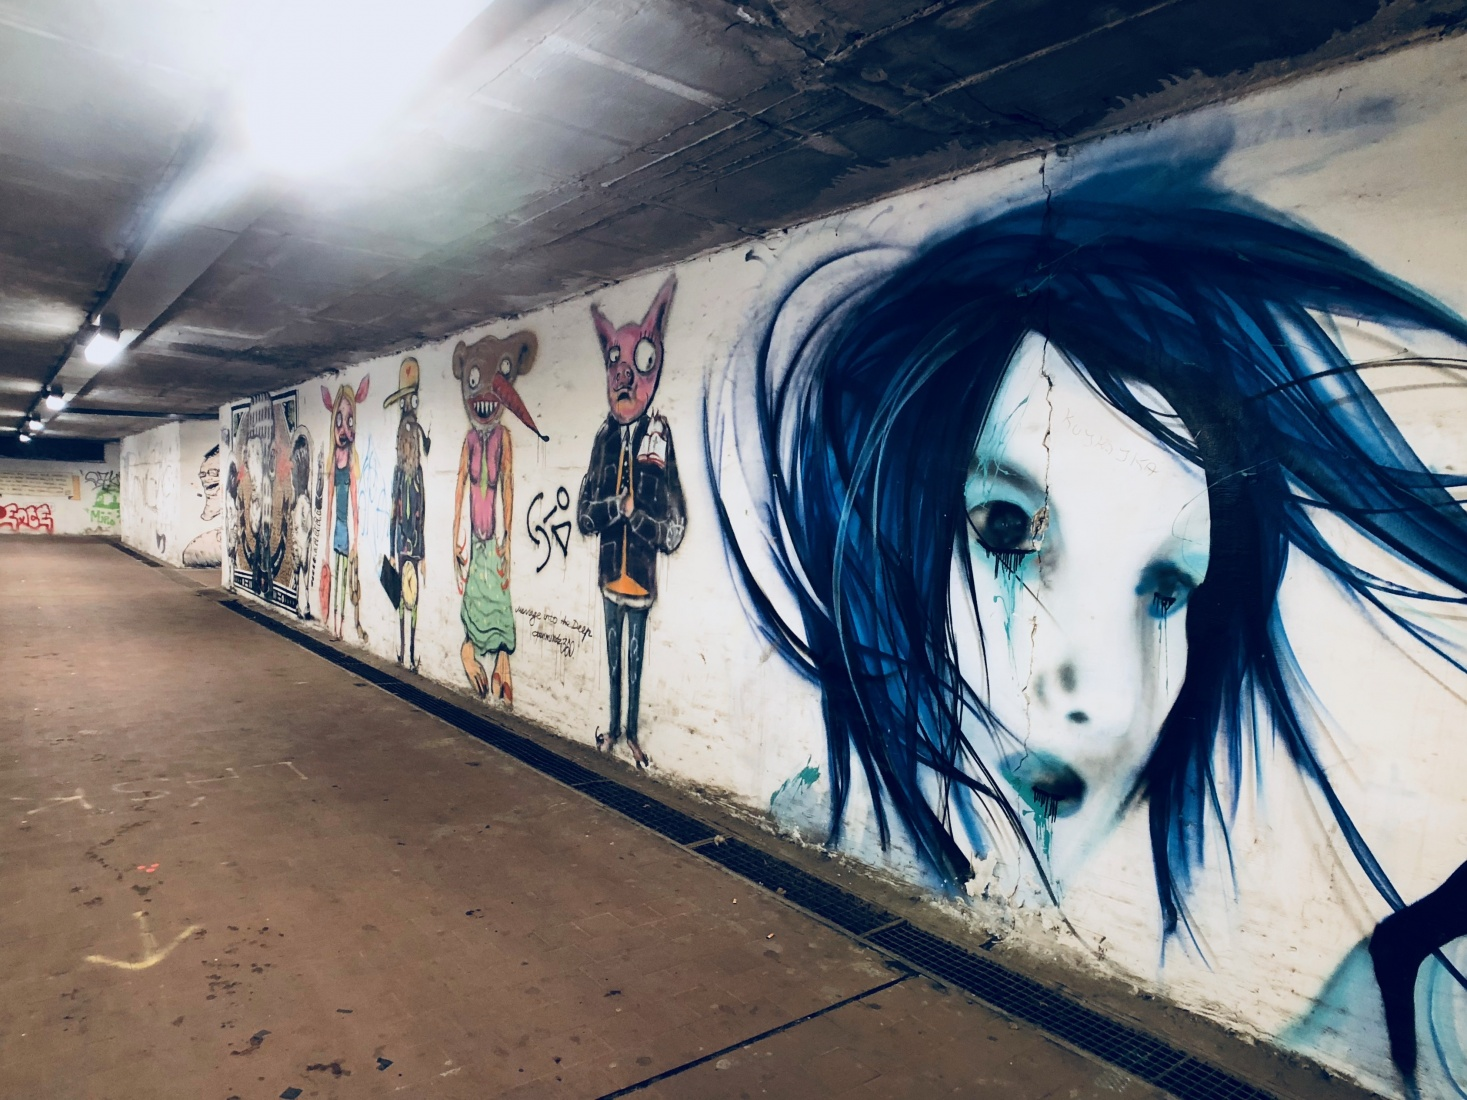 Street art on the underground passage walls leading from the tram stop to the Dolní Vítkovice steelworks in Ostrava, Czech Republic.